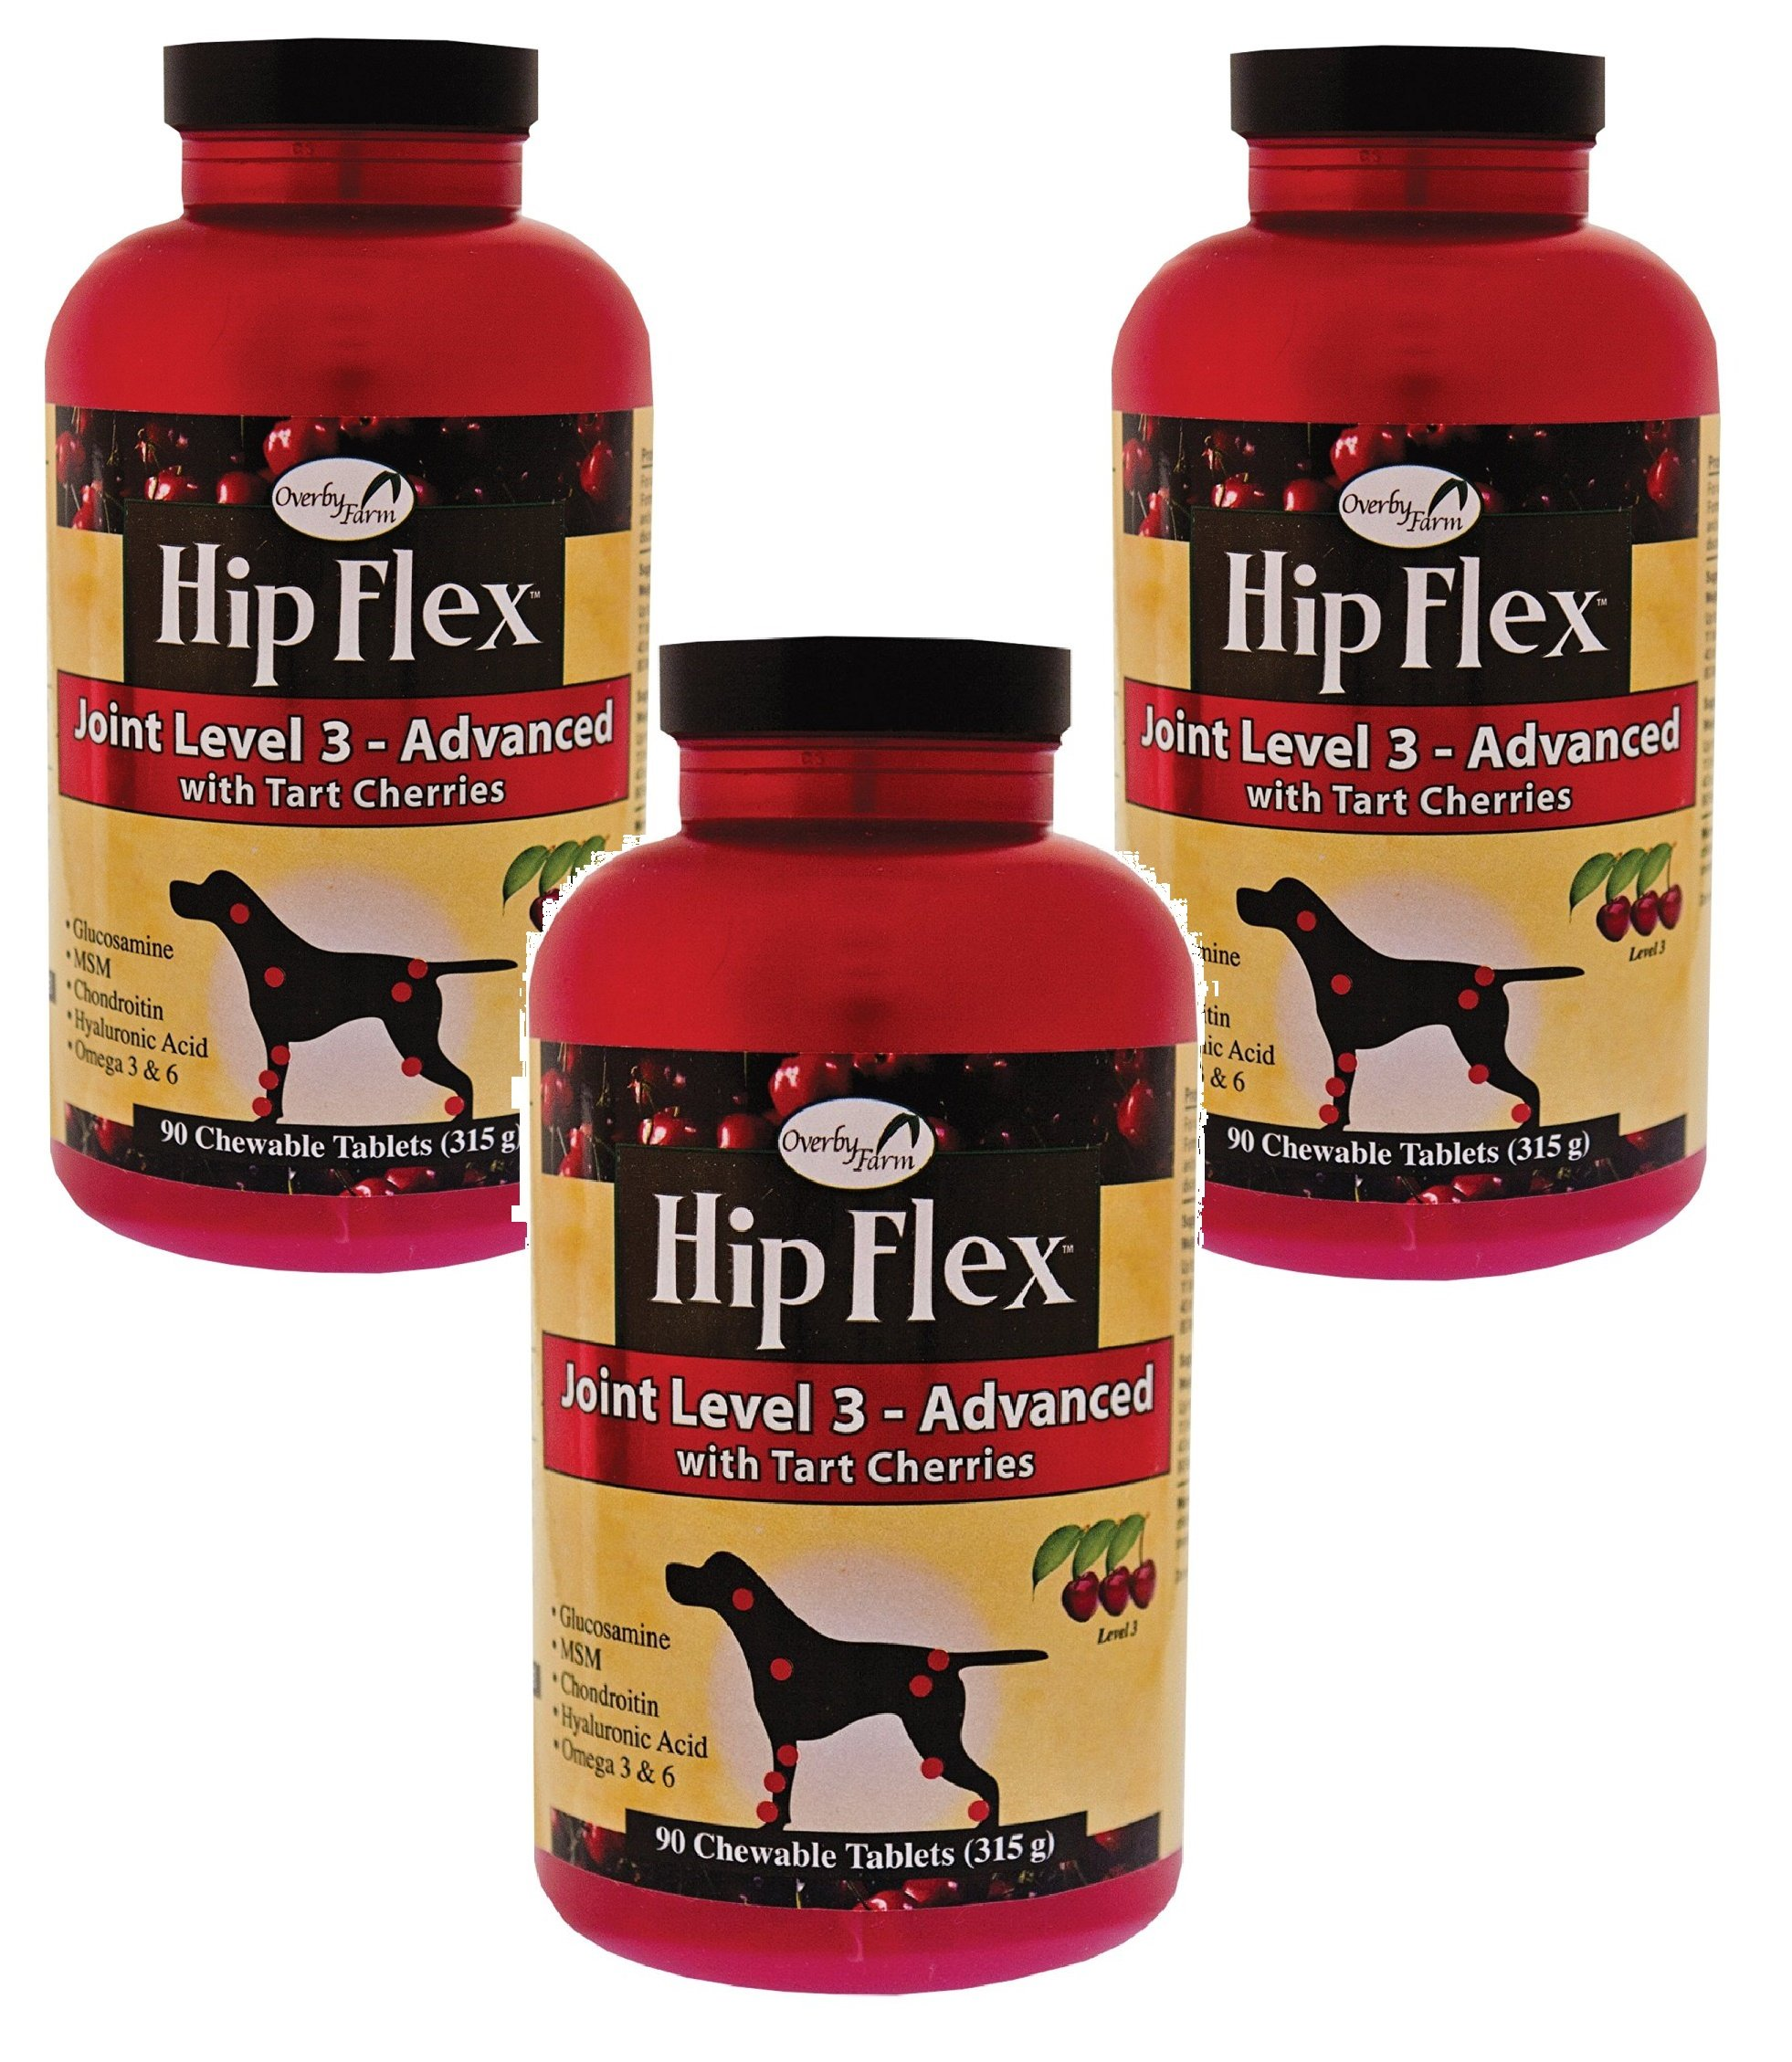 270-Count Overby Farm Hip Flex Joint Level 3 Advanced Care with Tart Cherries (Chewable Tablets) for Dogs (3 Bottles with 90 Tablets Each)